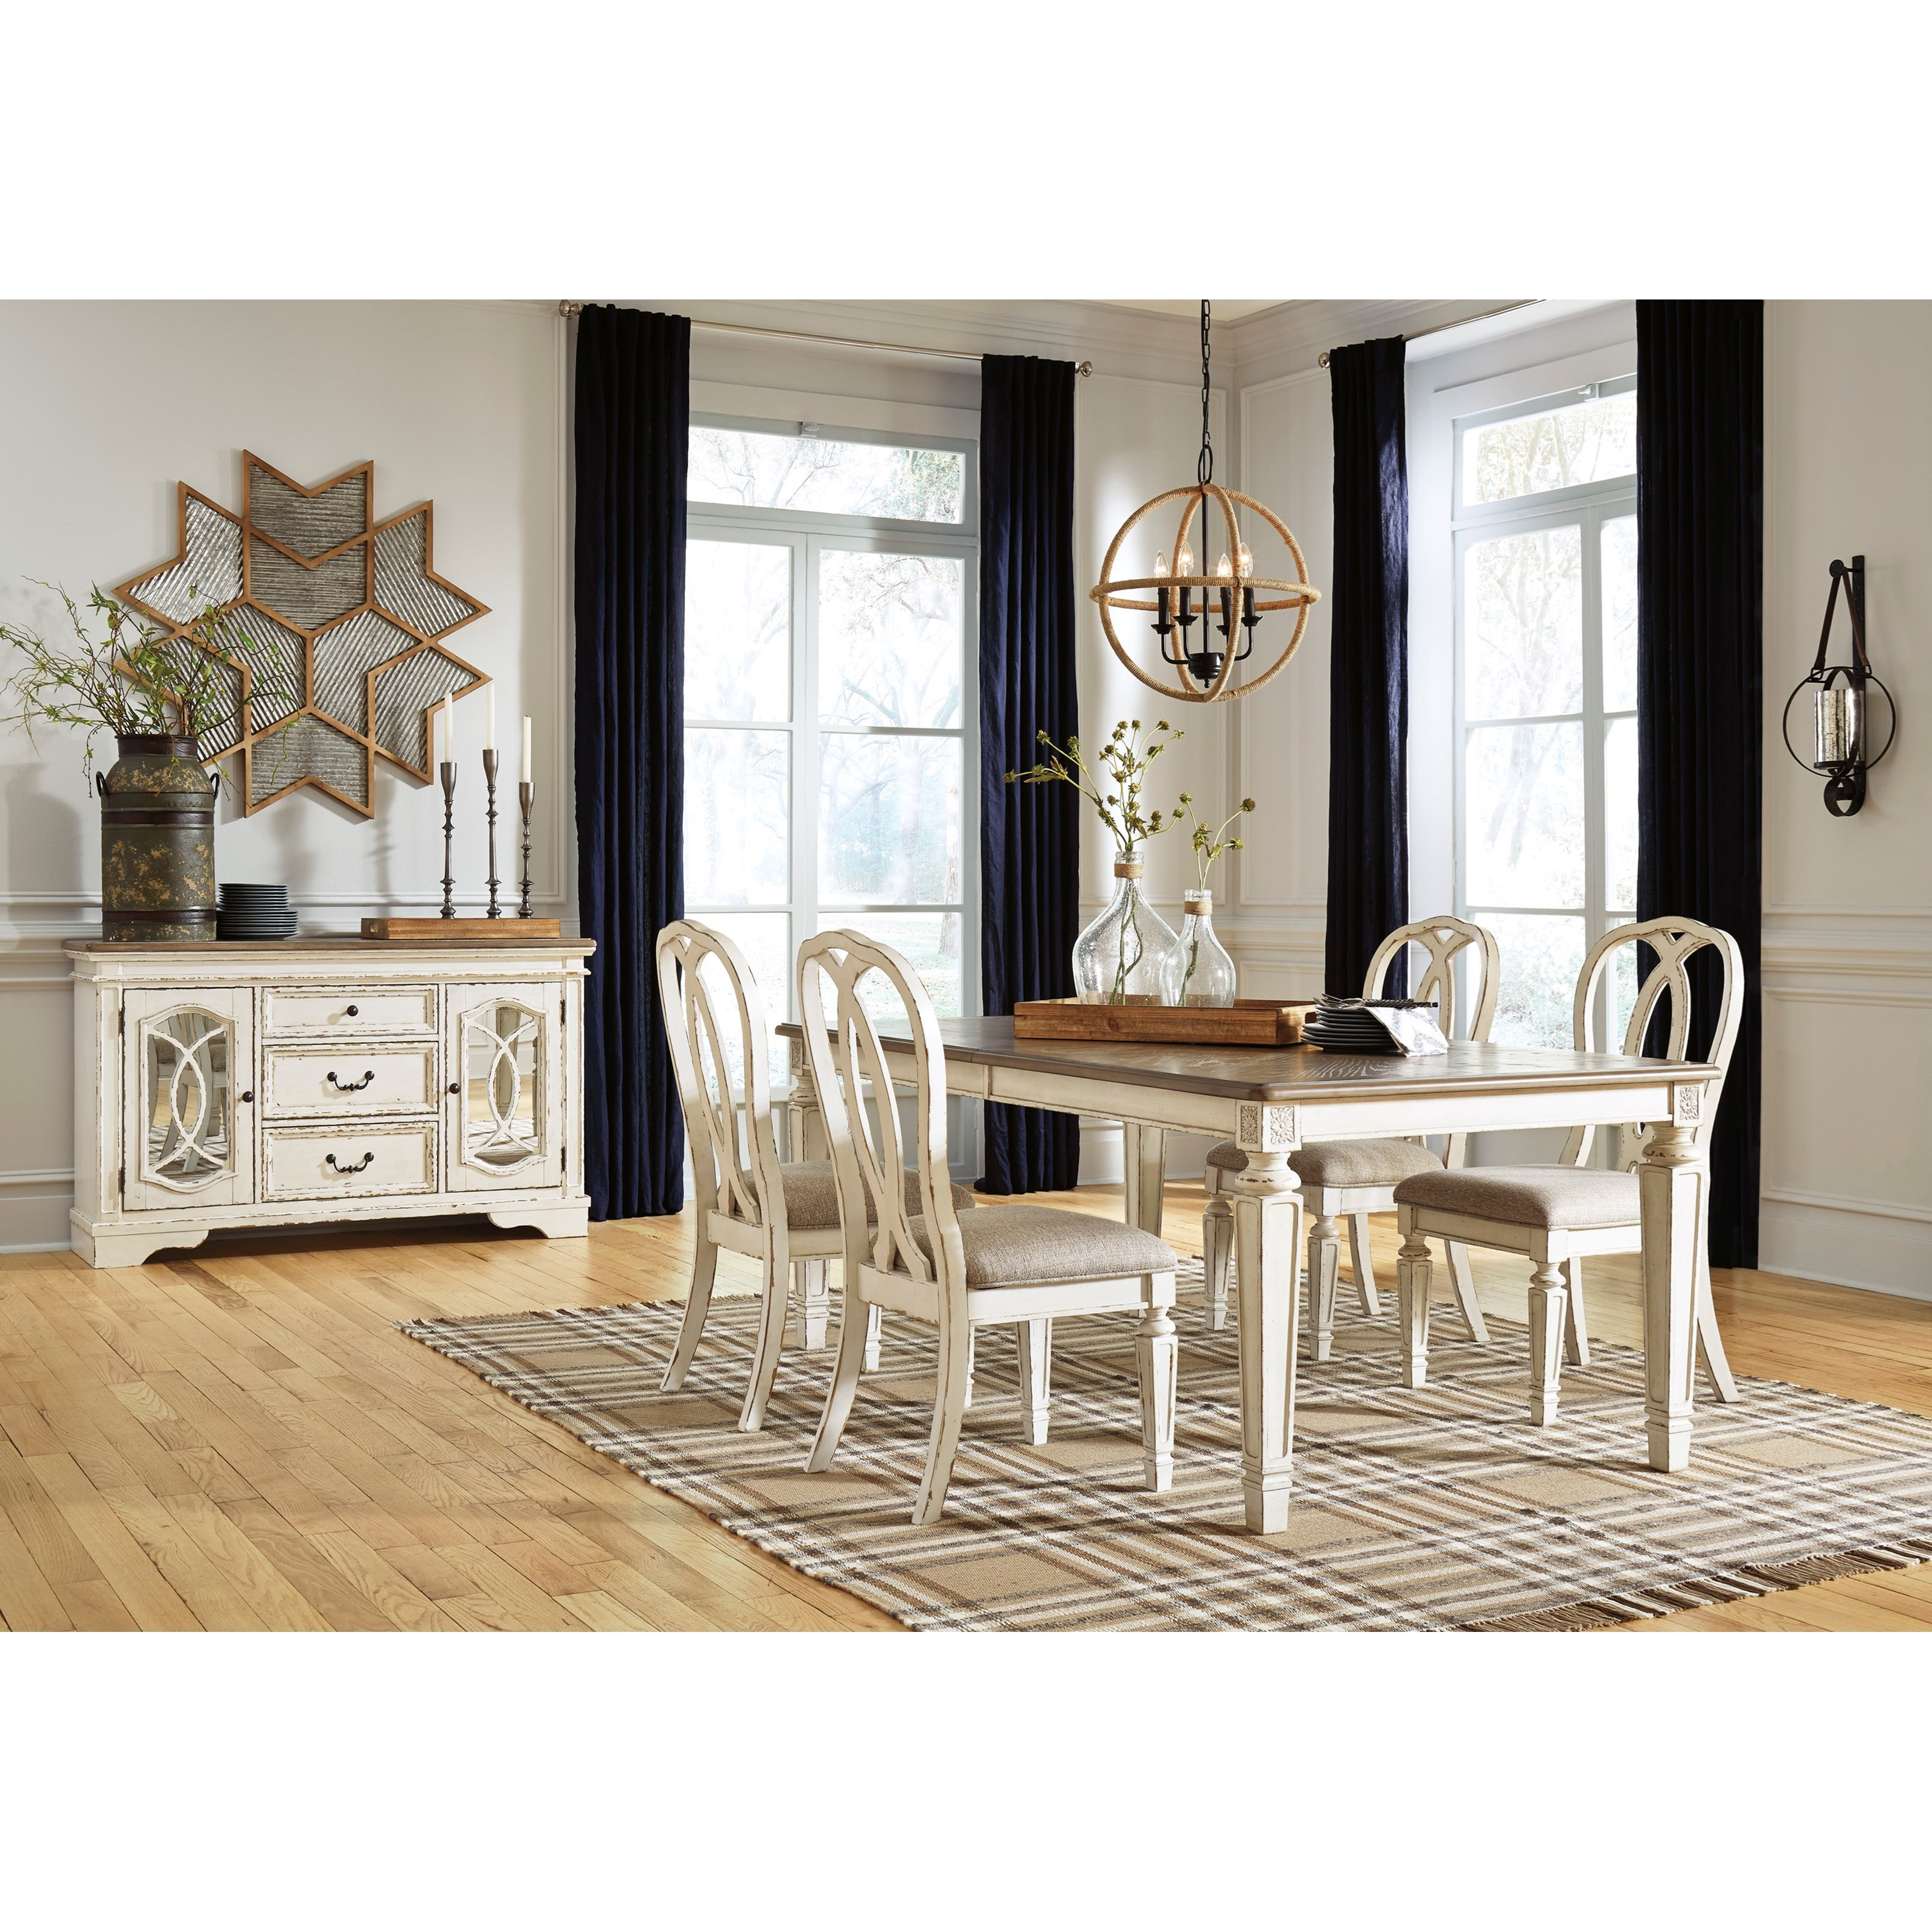 Realyn Casual Dining Room Group by Signature Design by Ashley at Standard Furniture